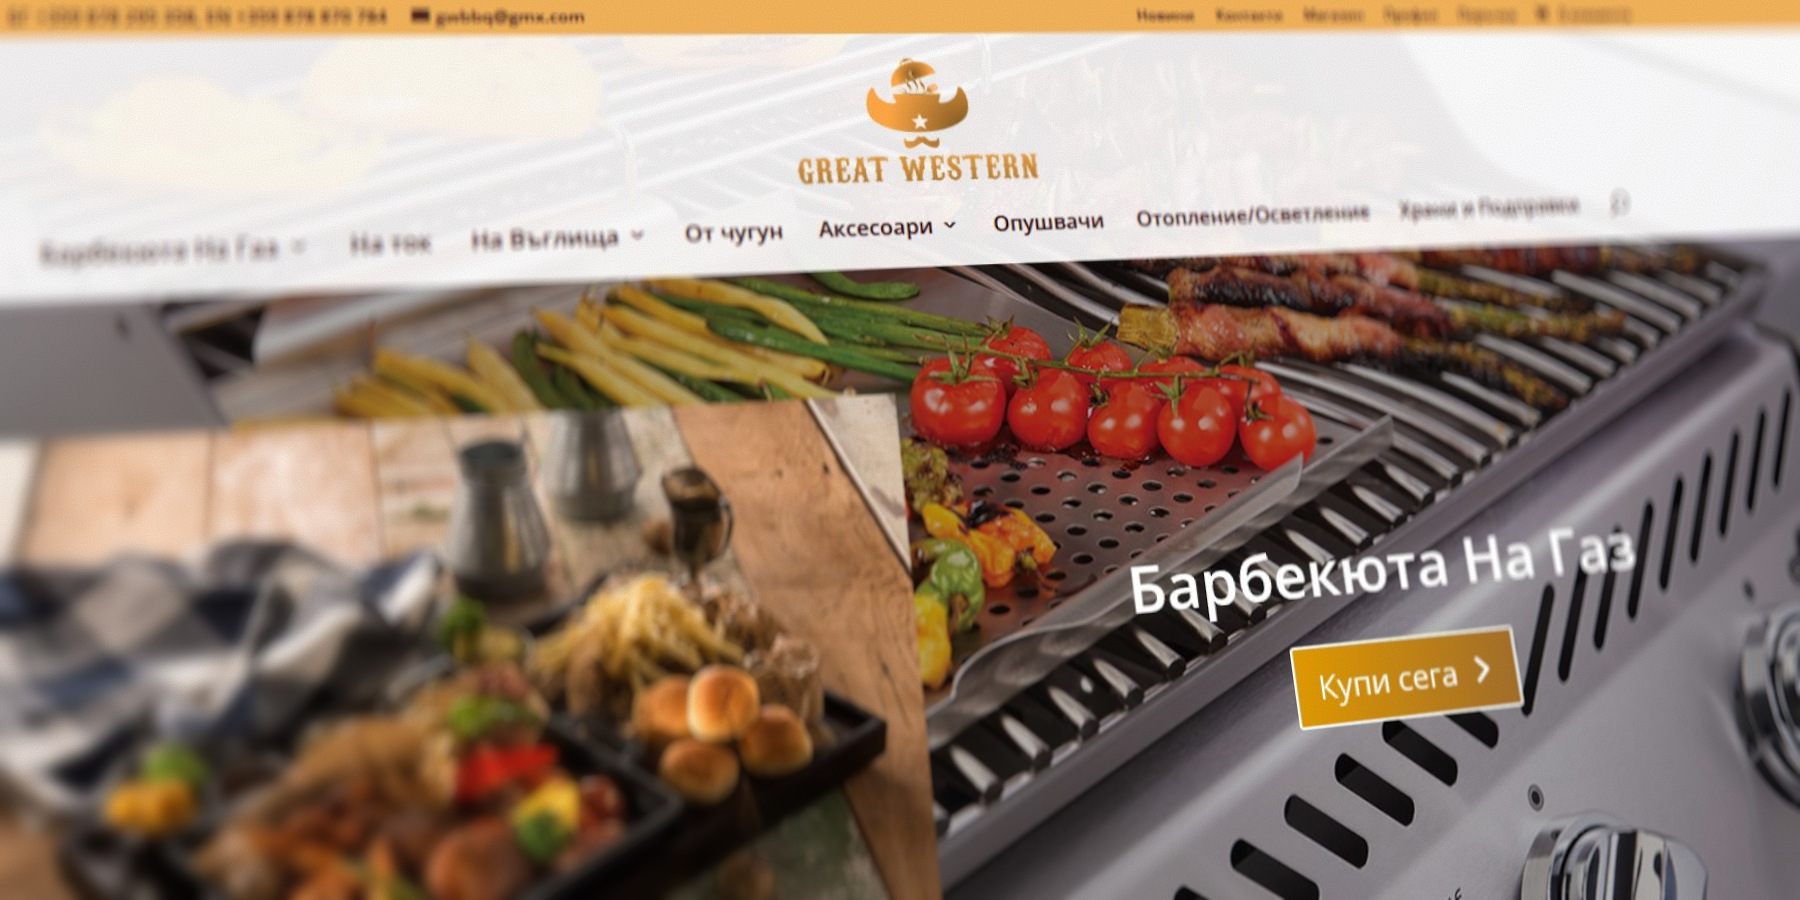 Great Western BBQ – e-shop